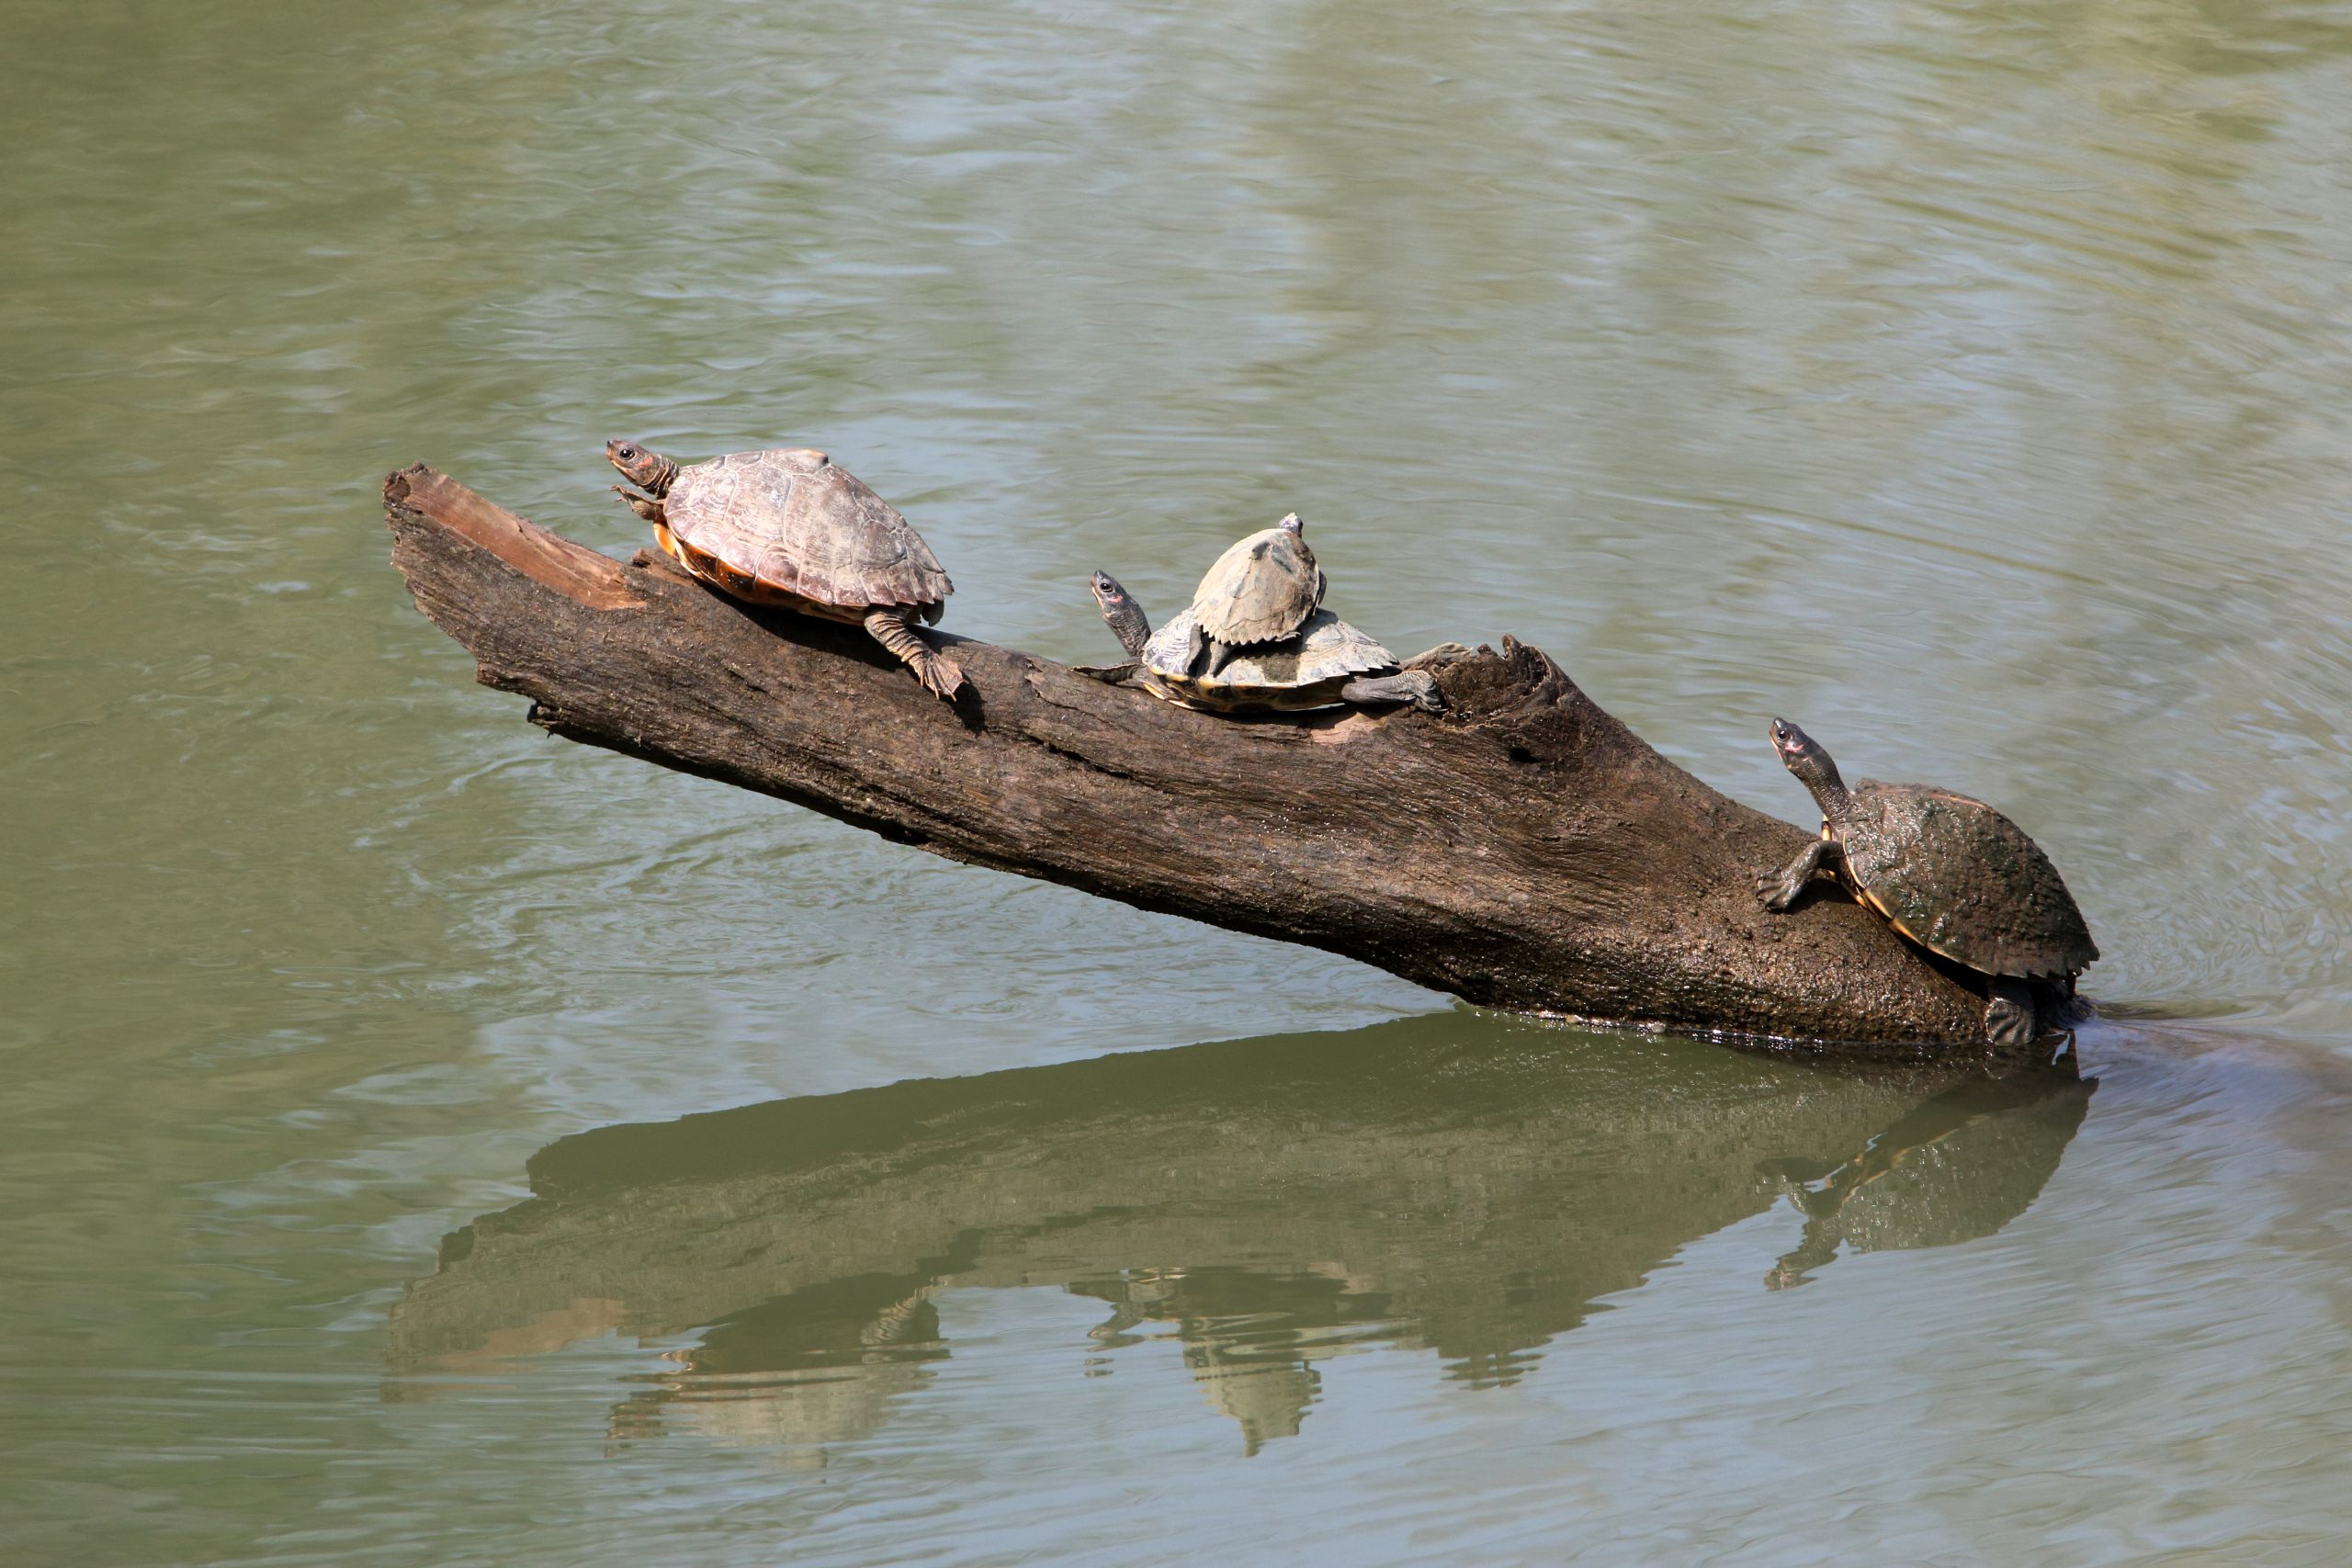 Group of turtles on a log.